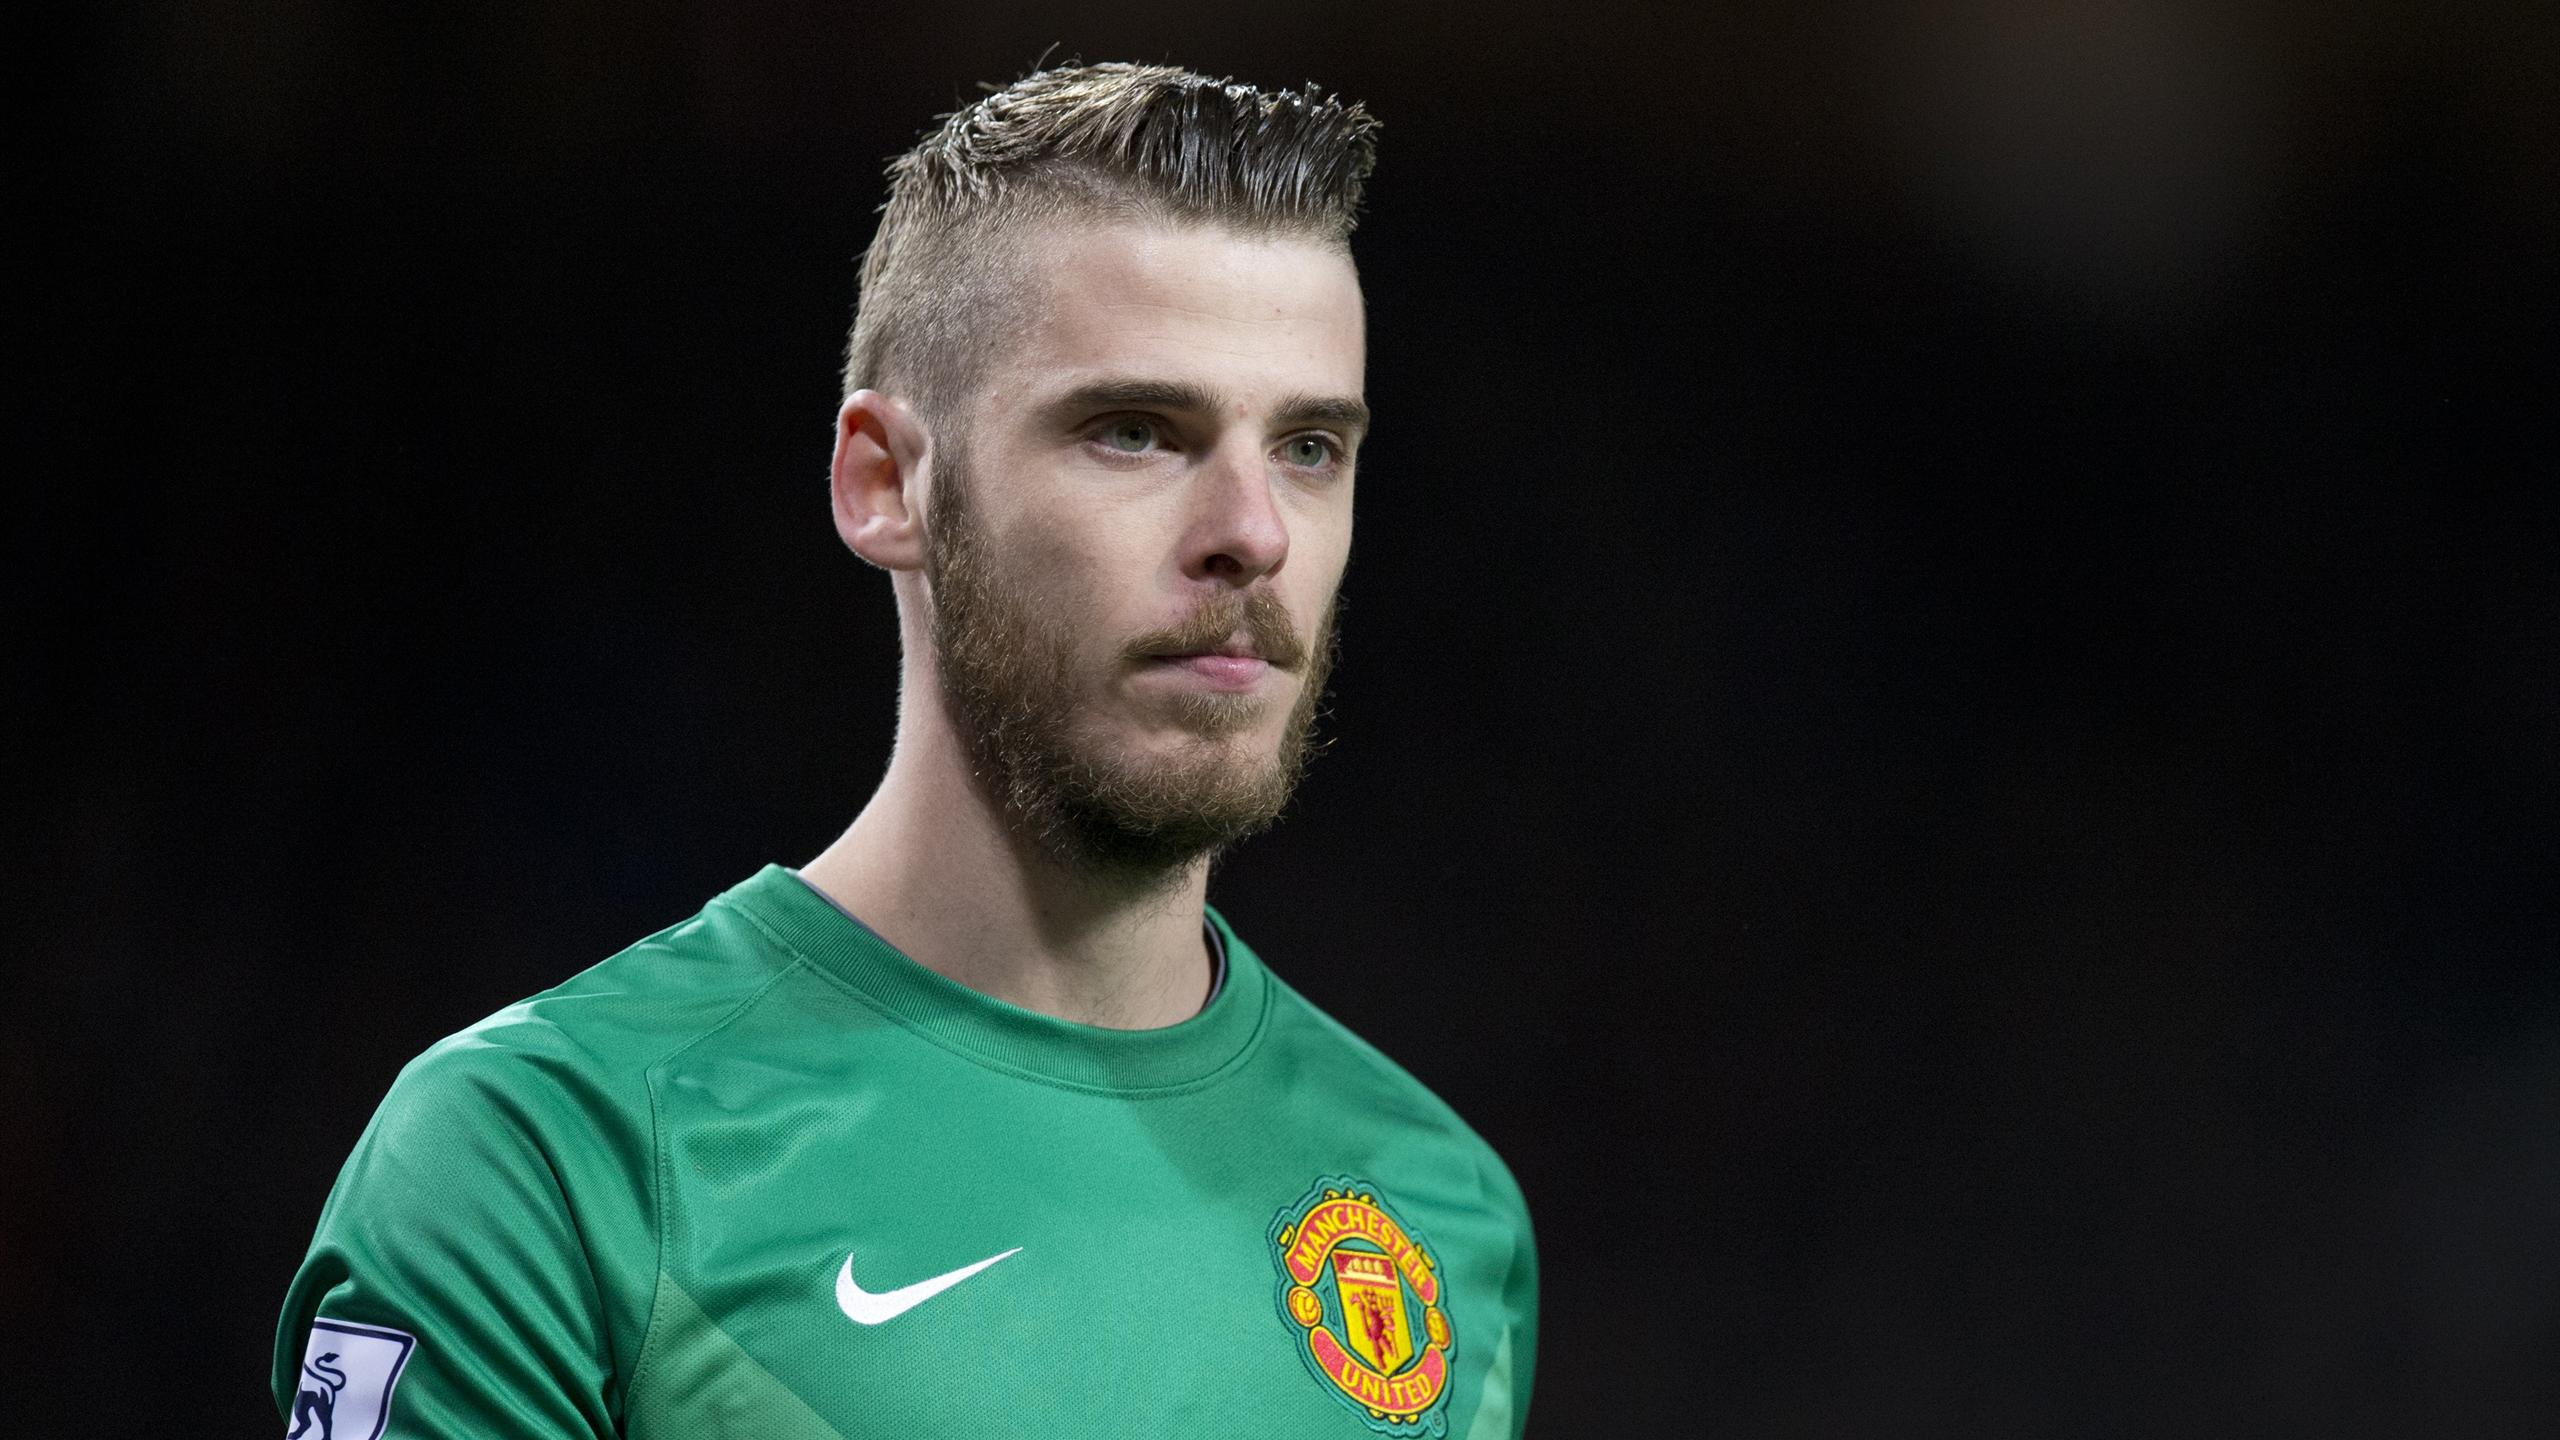 Manchester United's Spanish goalkeeper David de Gea looks on during the FA Cup quarter-final